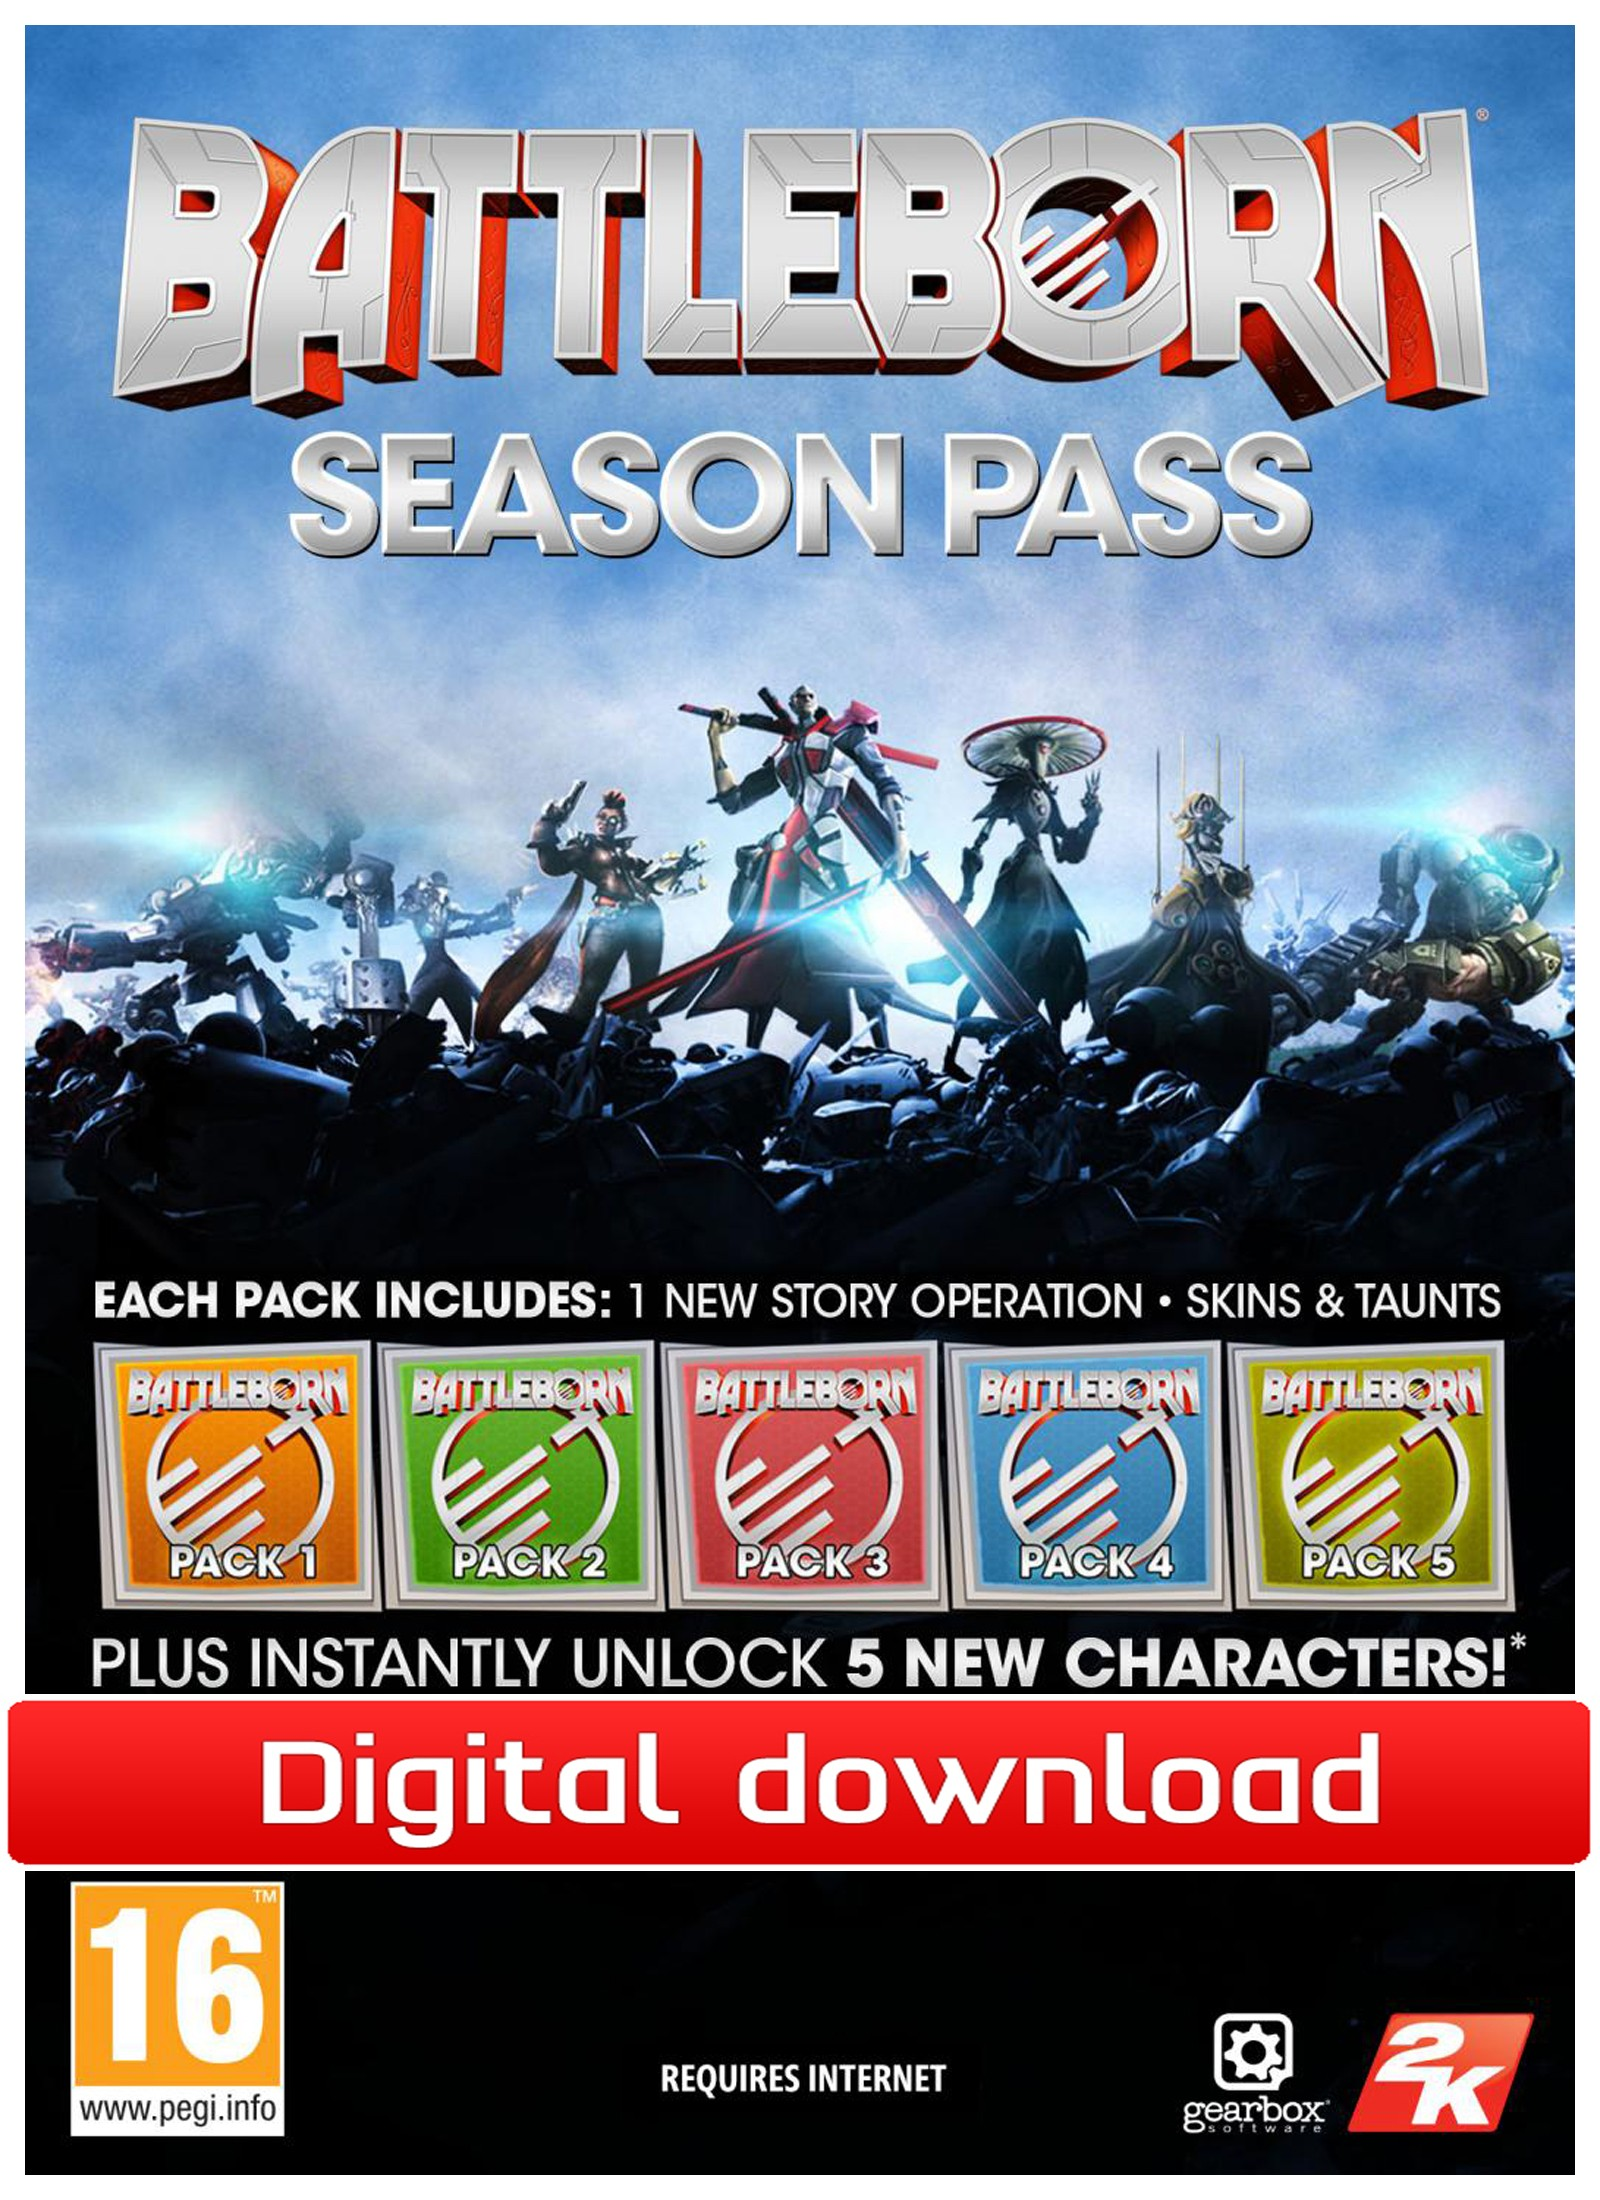 39148 : Battleborn: Season Pass (PC nedlastning)